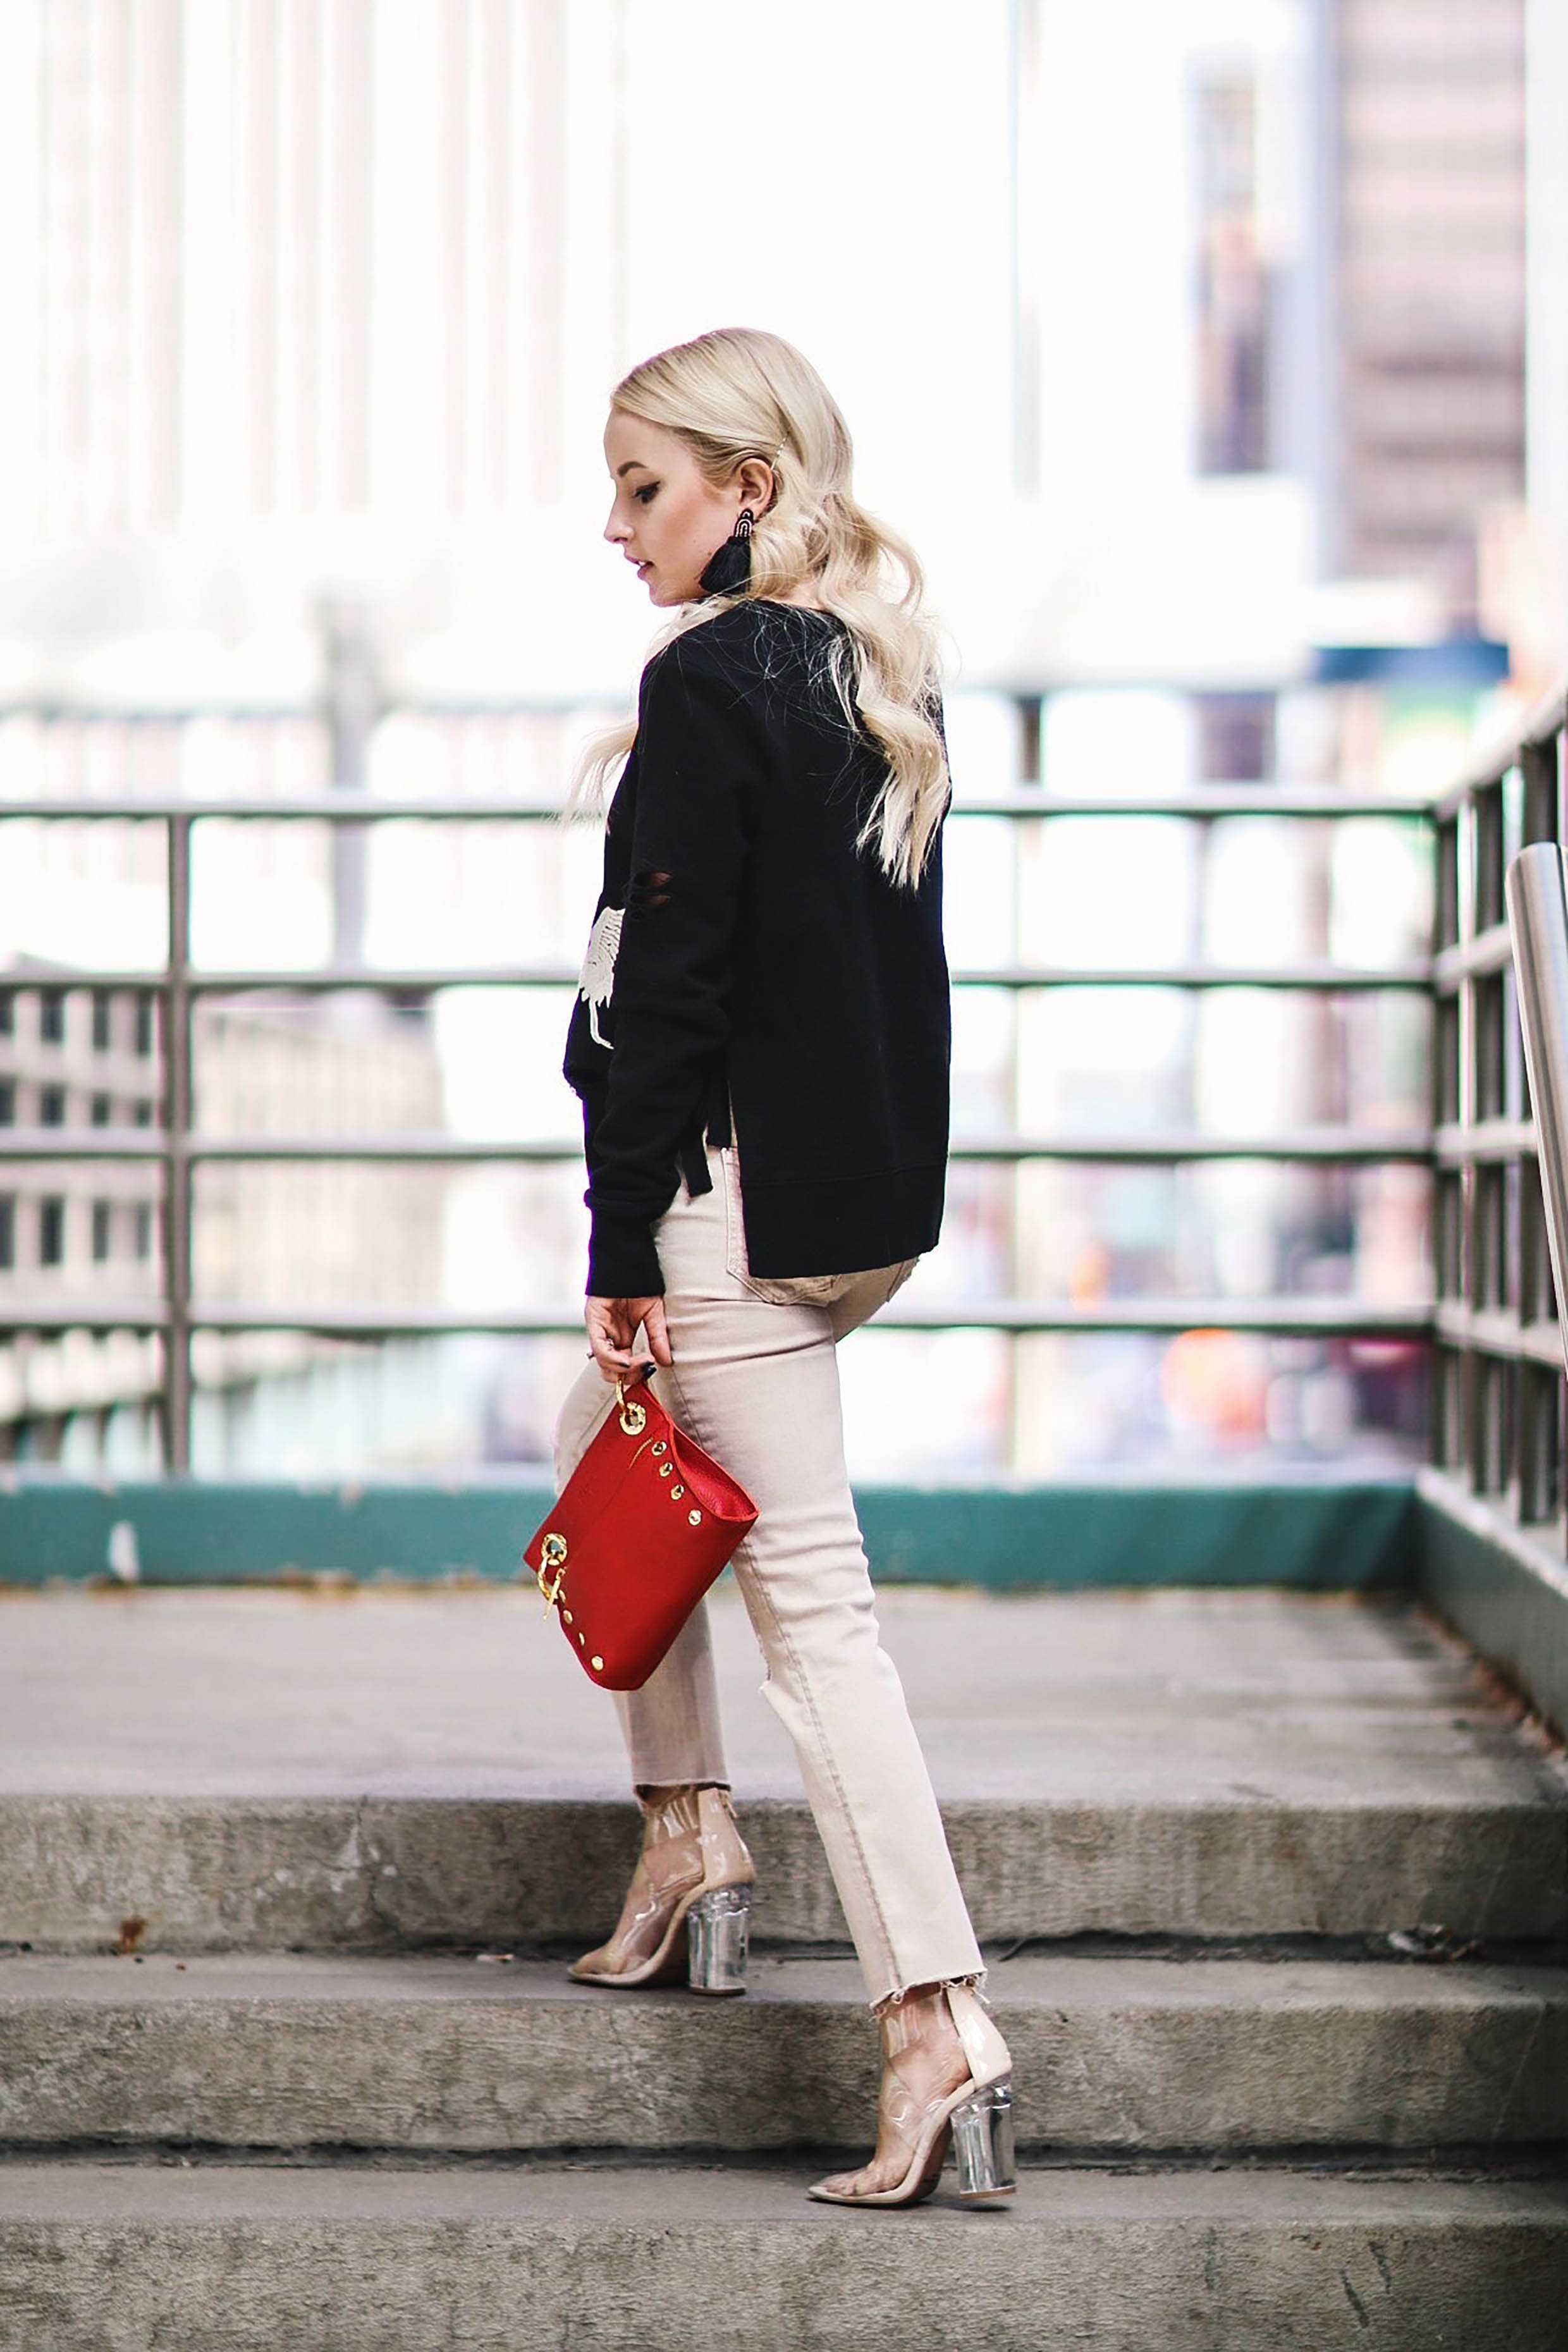 FINDING THE PERFECT PAIR OF JEANS WITH SHOP REBEL